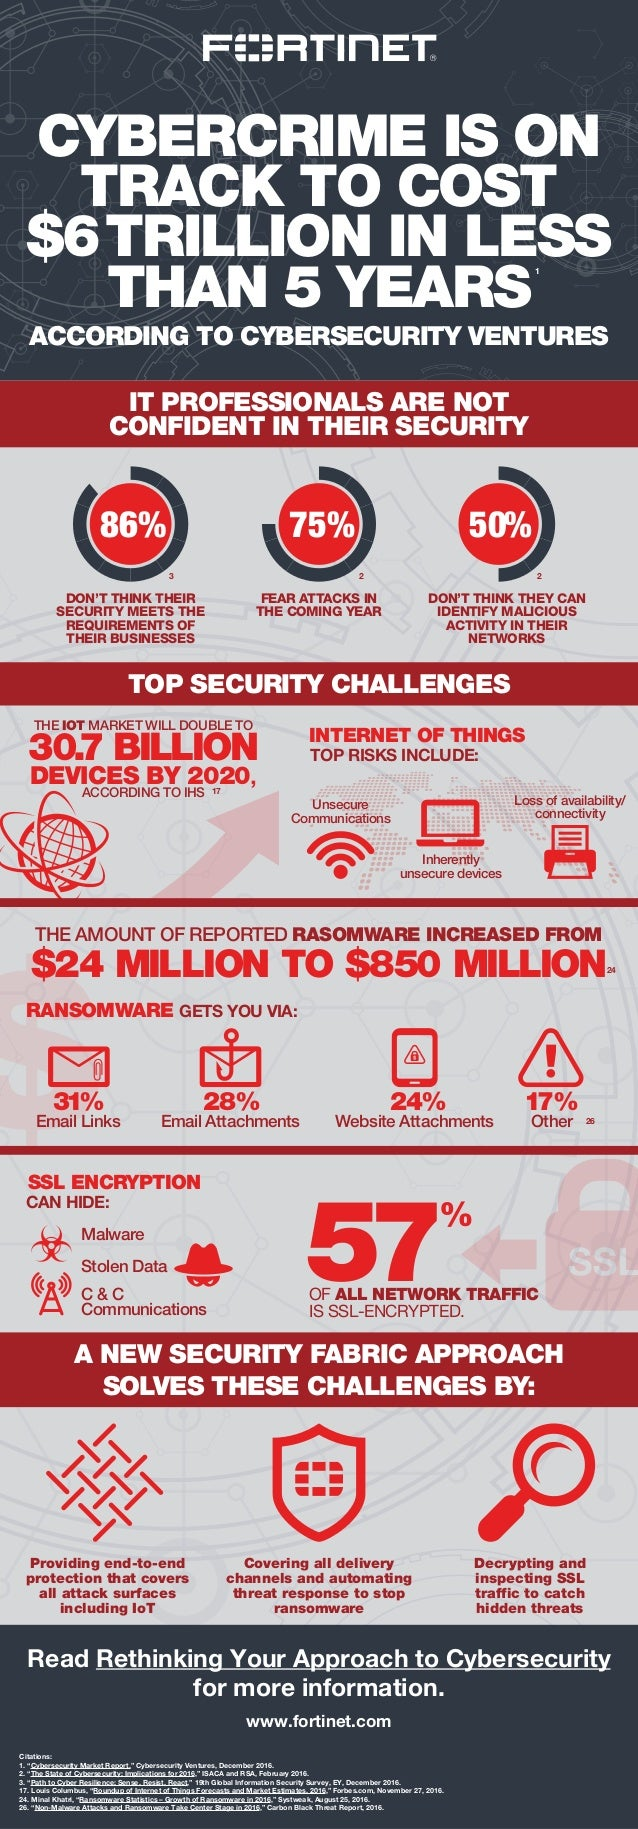 $ CYBERCRIME IS ON TRACK TO COST $6TRILLION IN LESS THAN 5 YEARS ACCORDING TO CYBERSECURITY VENTURES www.fortinet.com Cita...